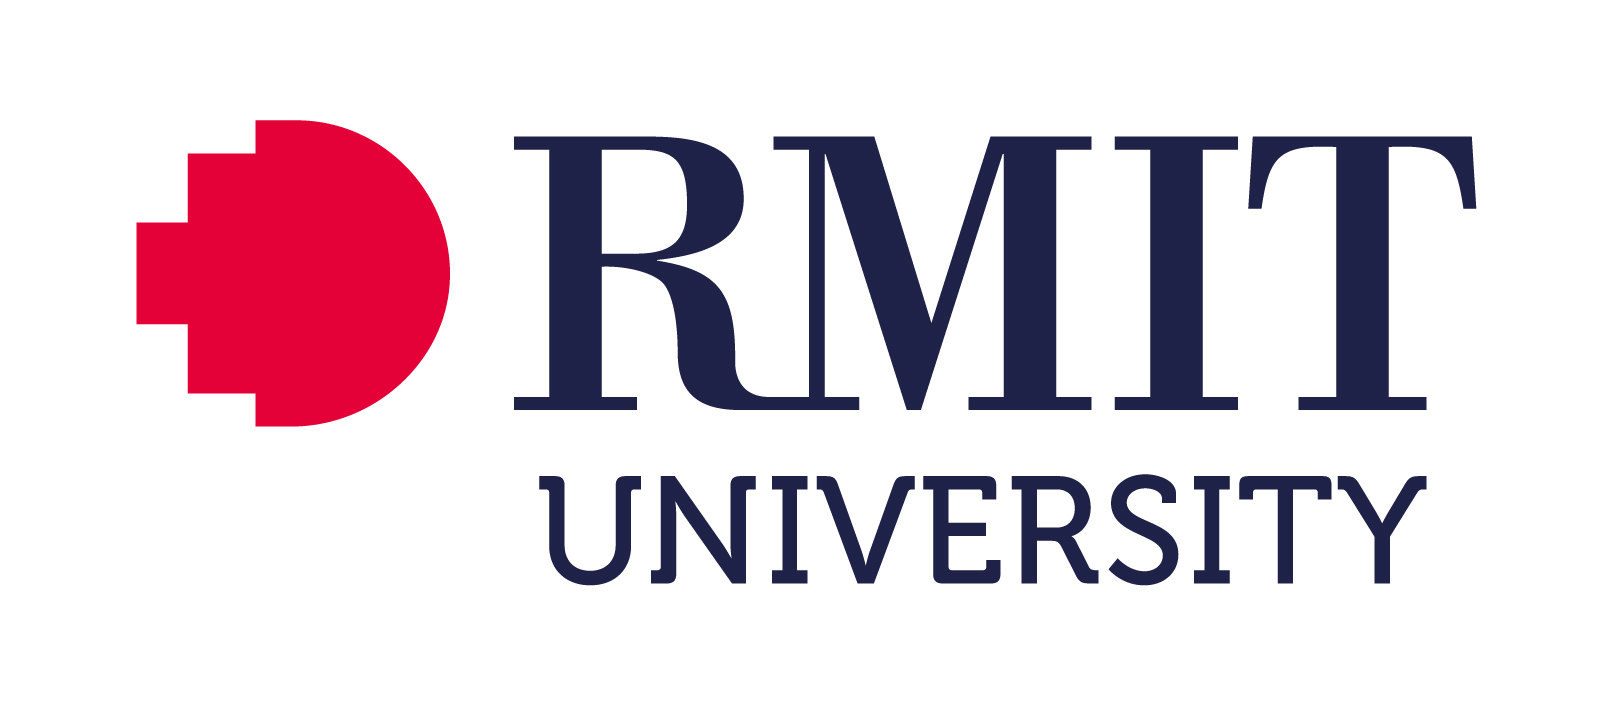 RMIT is a global university of technology, design and enterprise. RMIT is a world leader in Art and Design; Architecture; Education; Engineering; Development; Computer Science and Information Systems; Business and Management; and Communication and Media Studies.